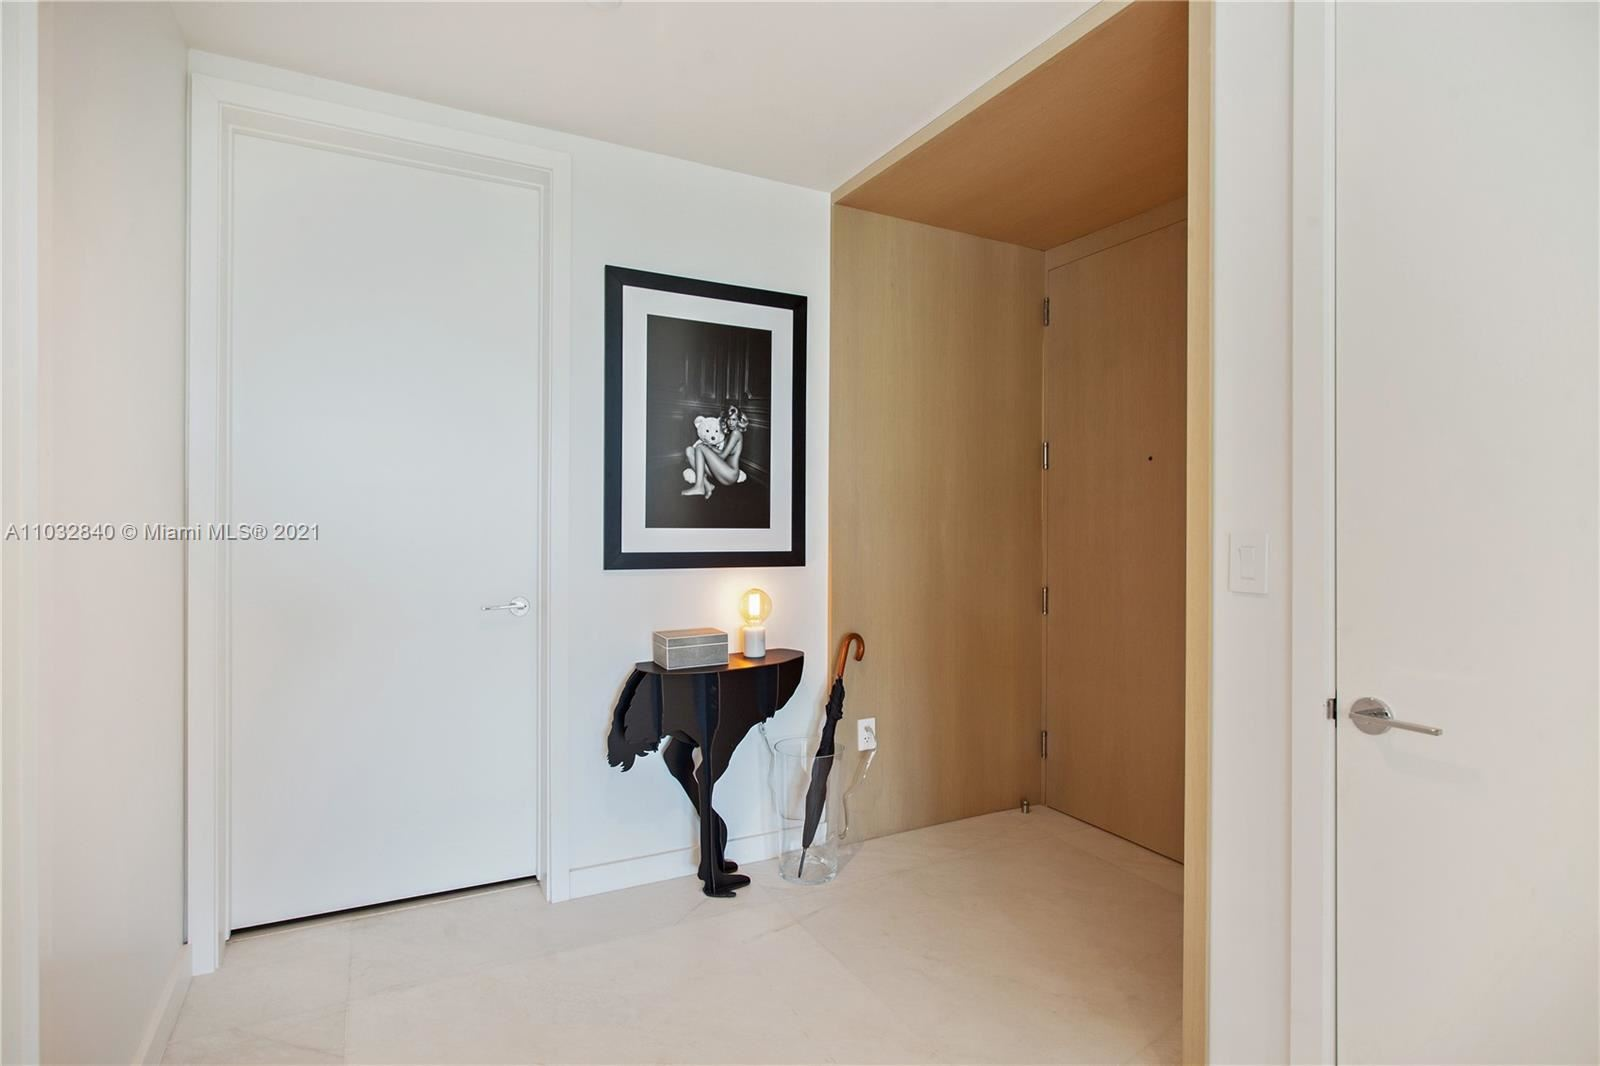 Photo of 10203 Collins Ave #211, Bal Harbour, FL 33154 (MLS # A11032840)